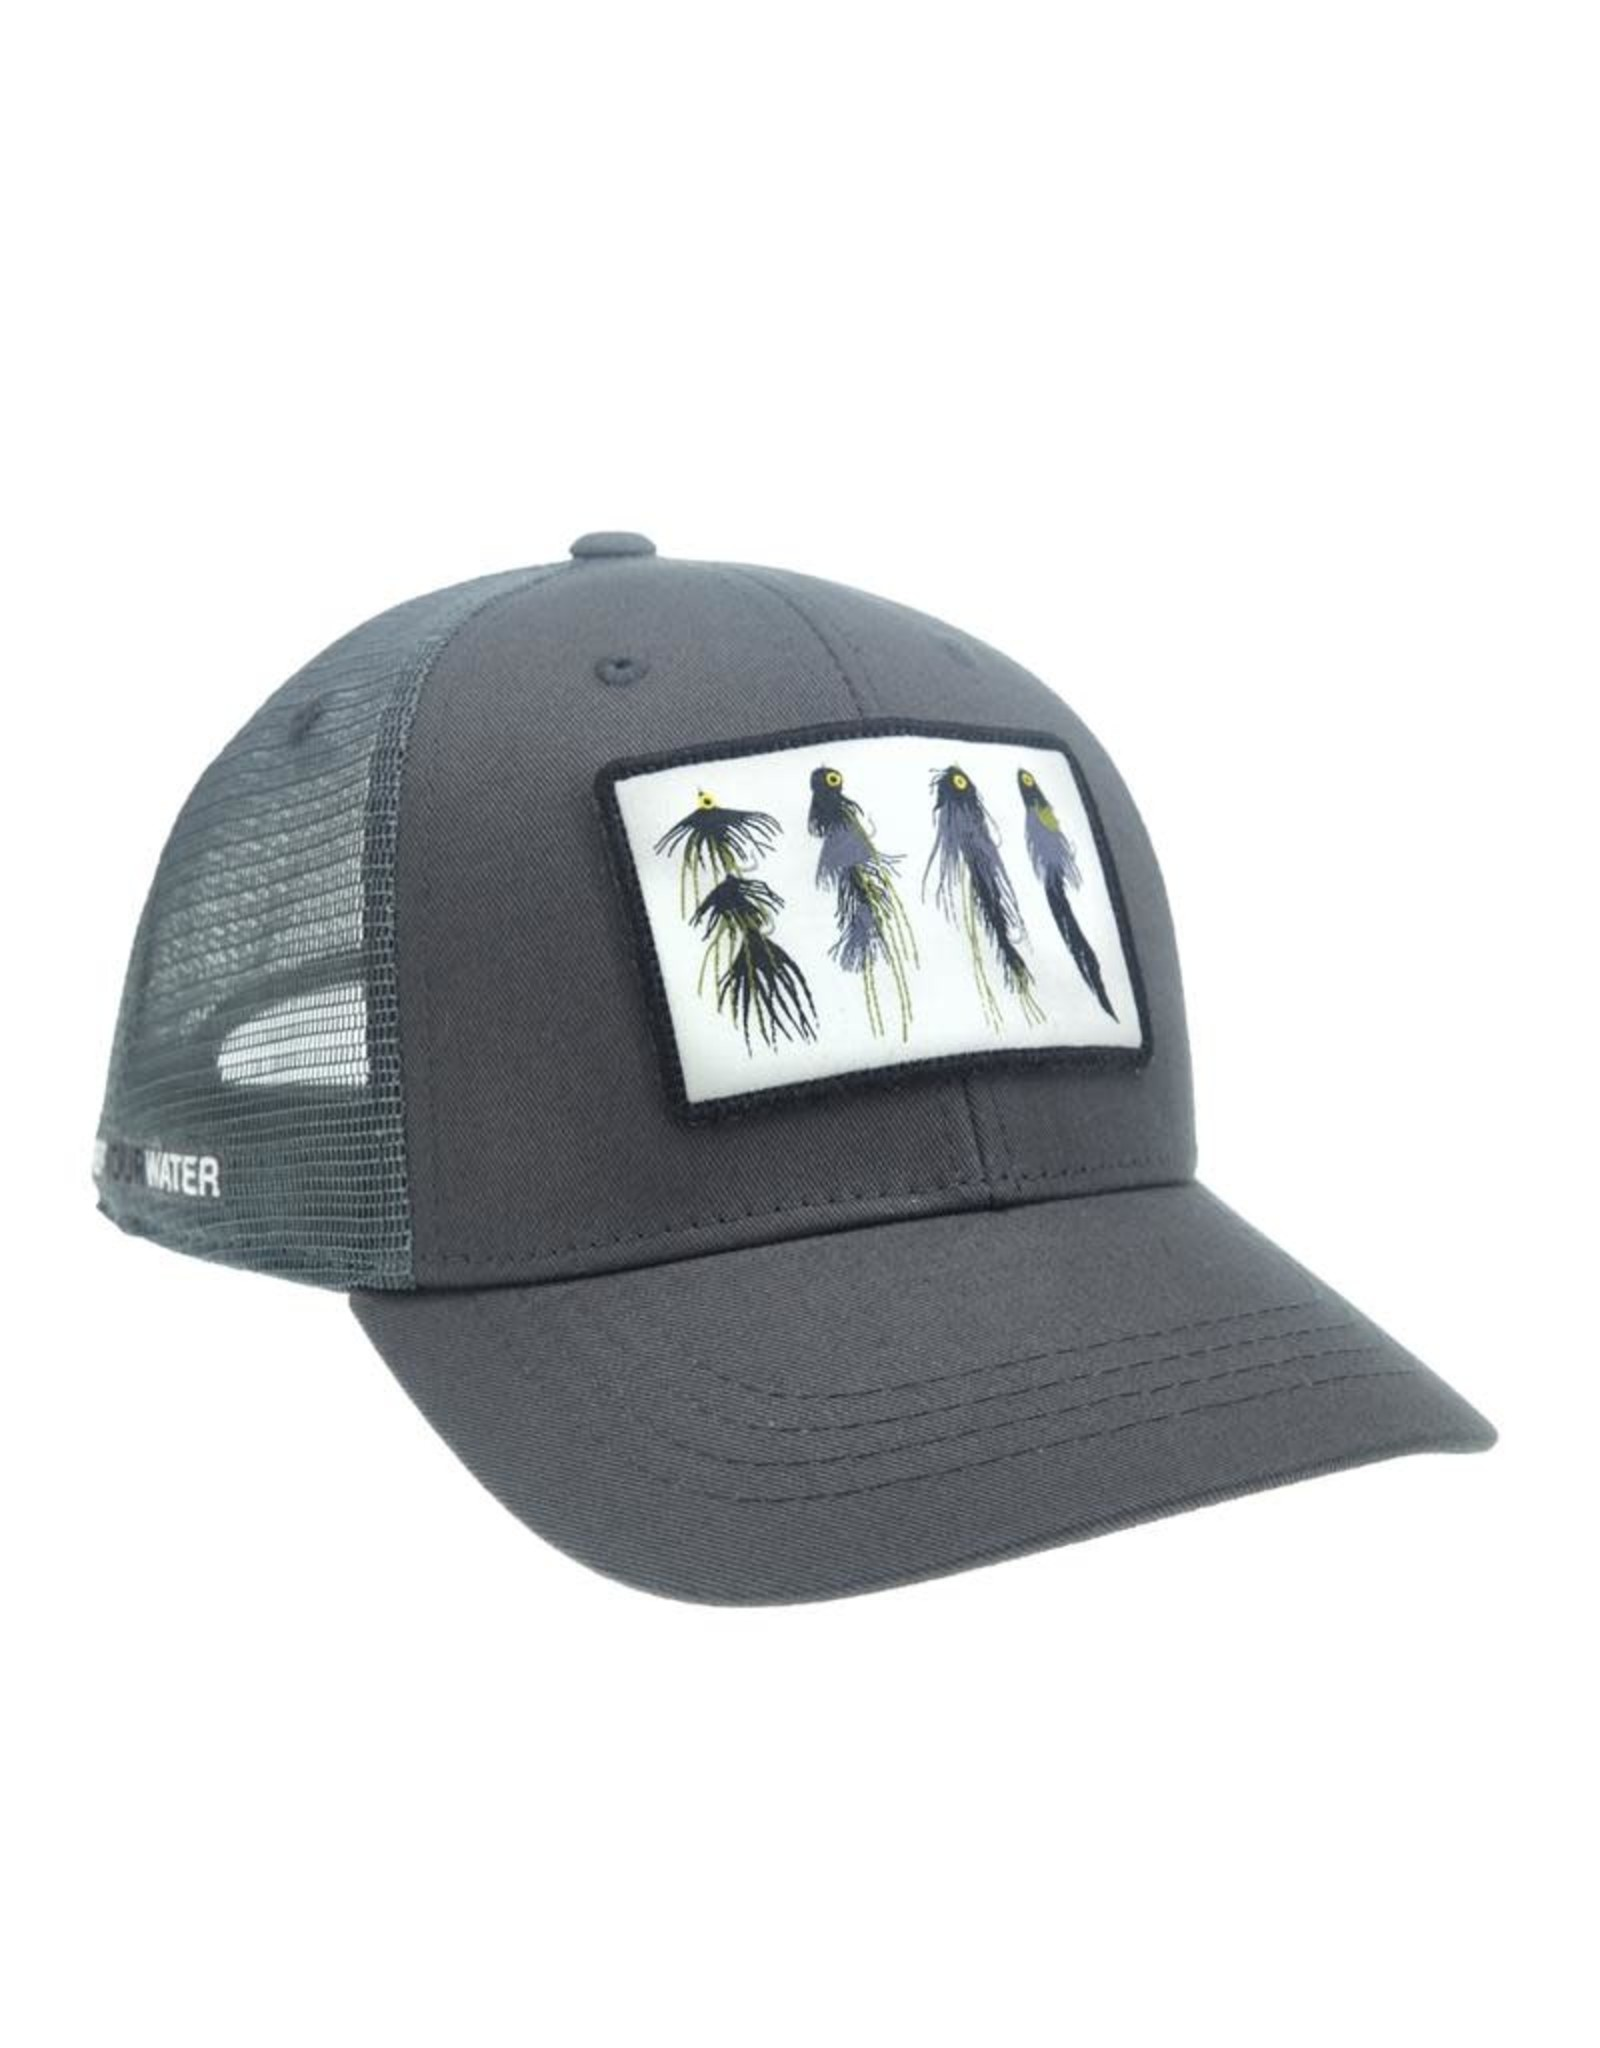 Rep Your Water RepYourWater The Meat Hat